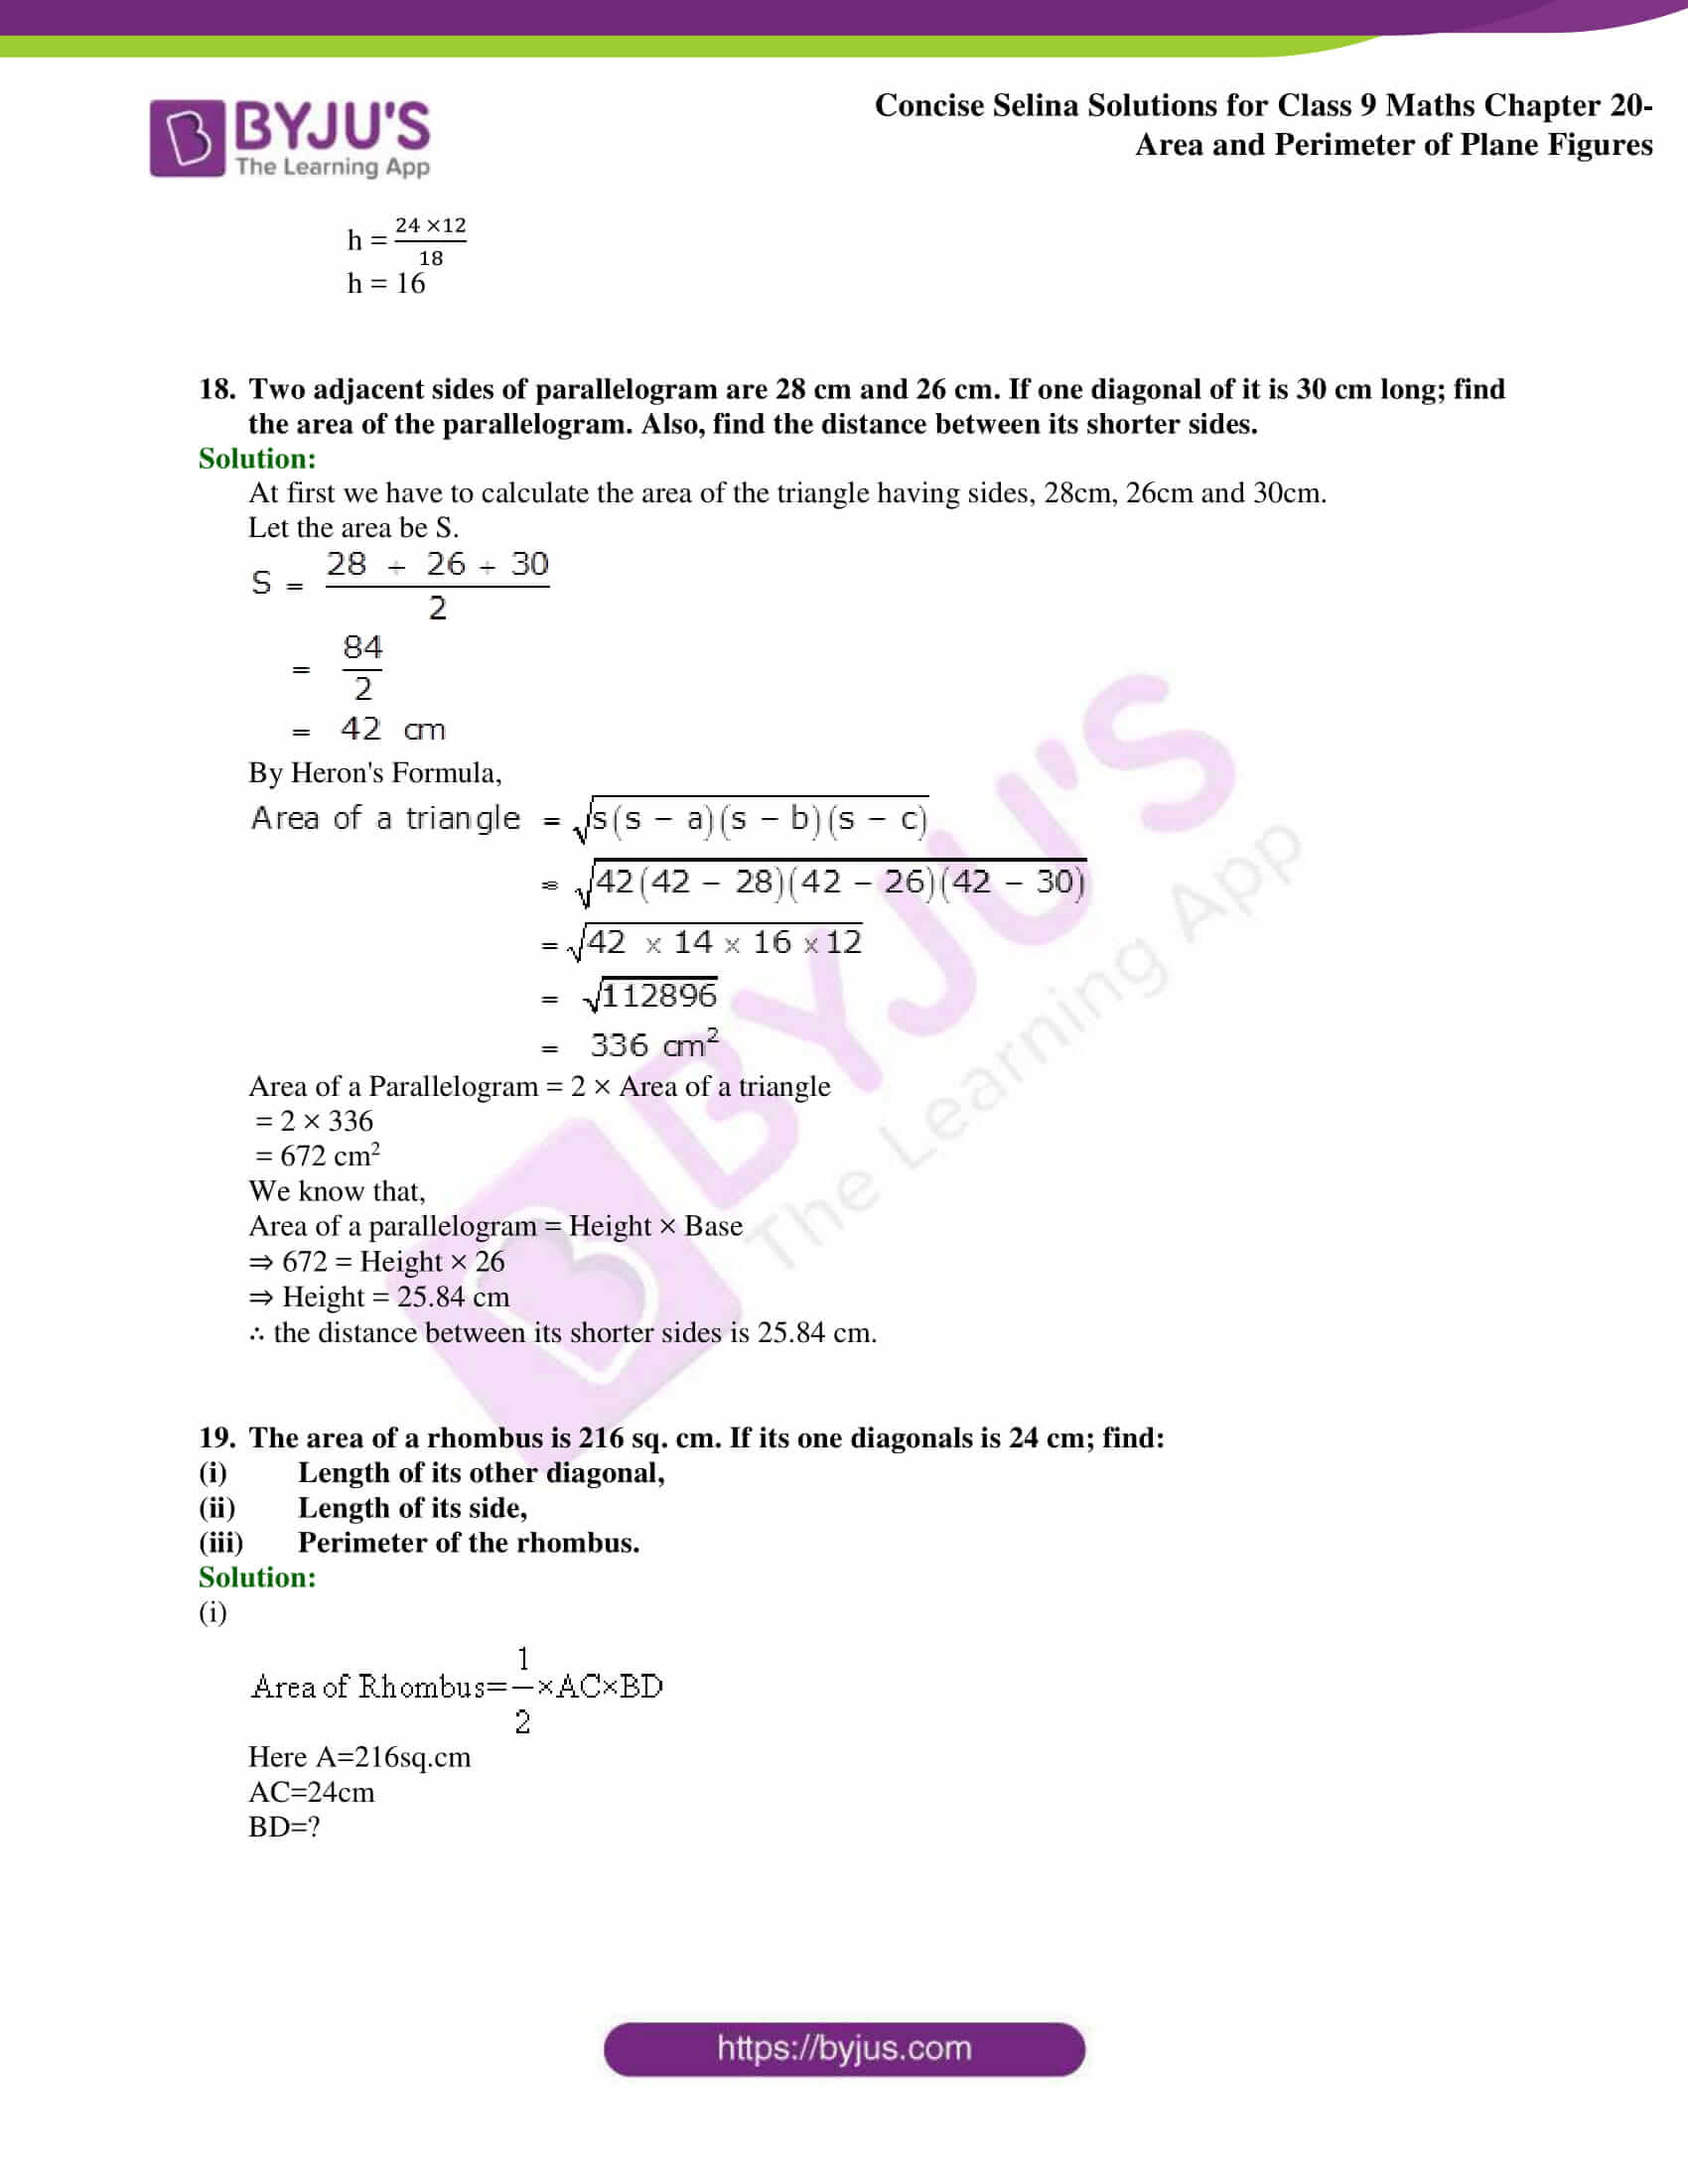 Concise Selina Solutions Class 9 Maths Chapter 20 Area and Perimeter of Plane part 19